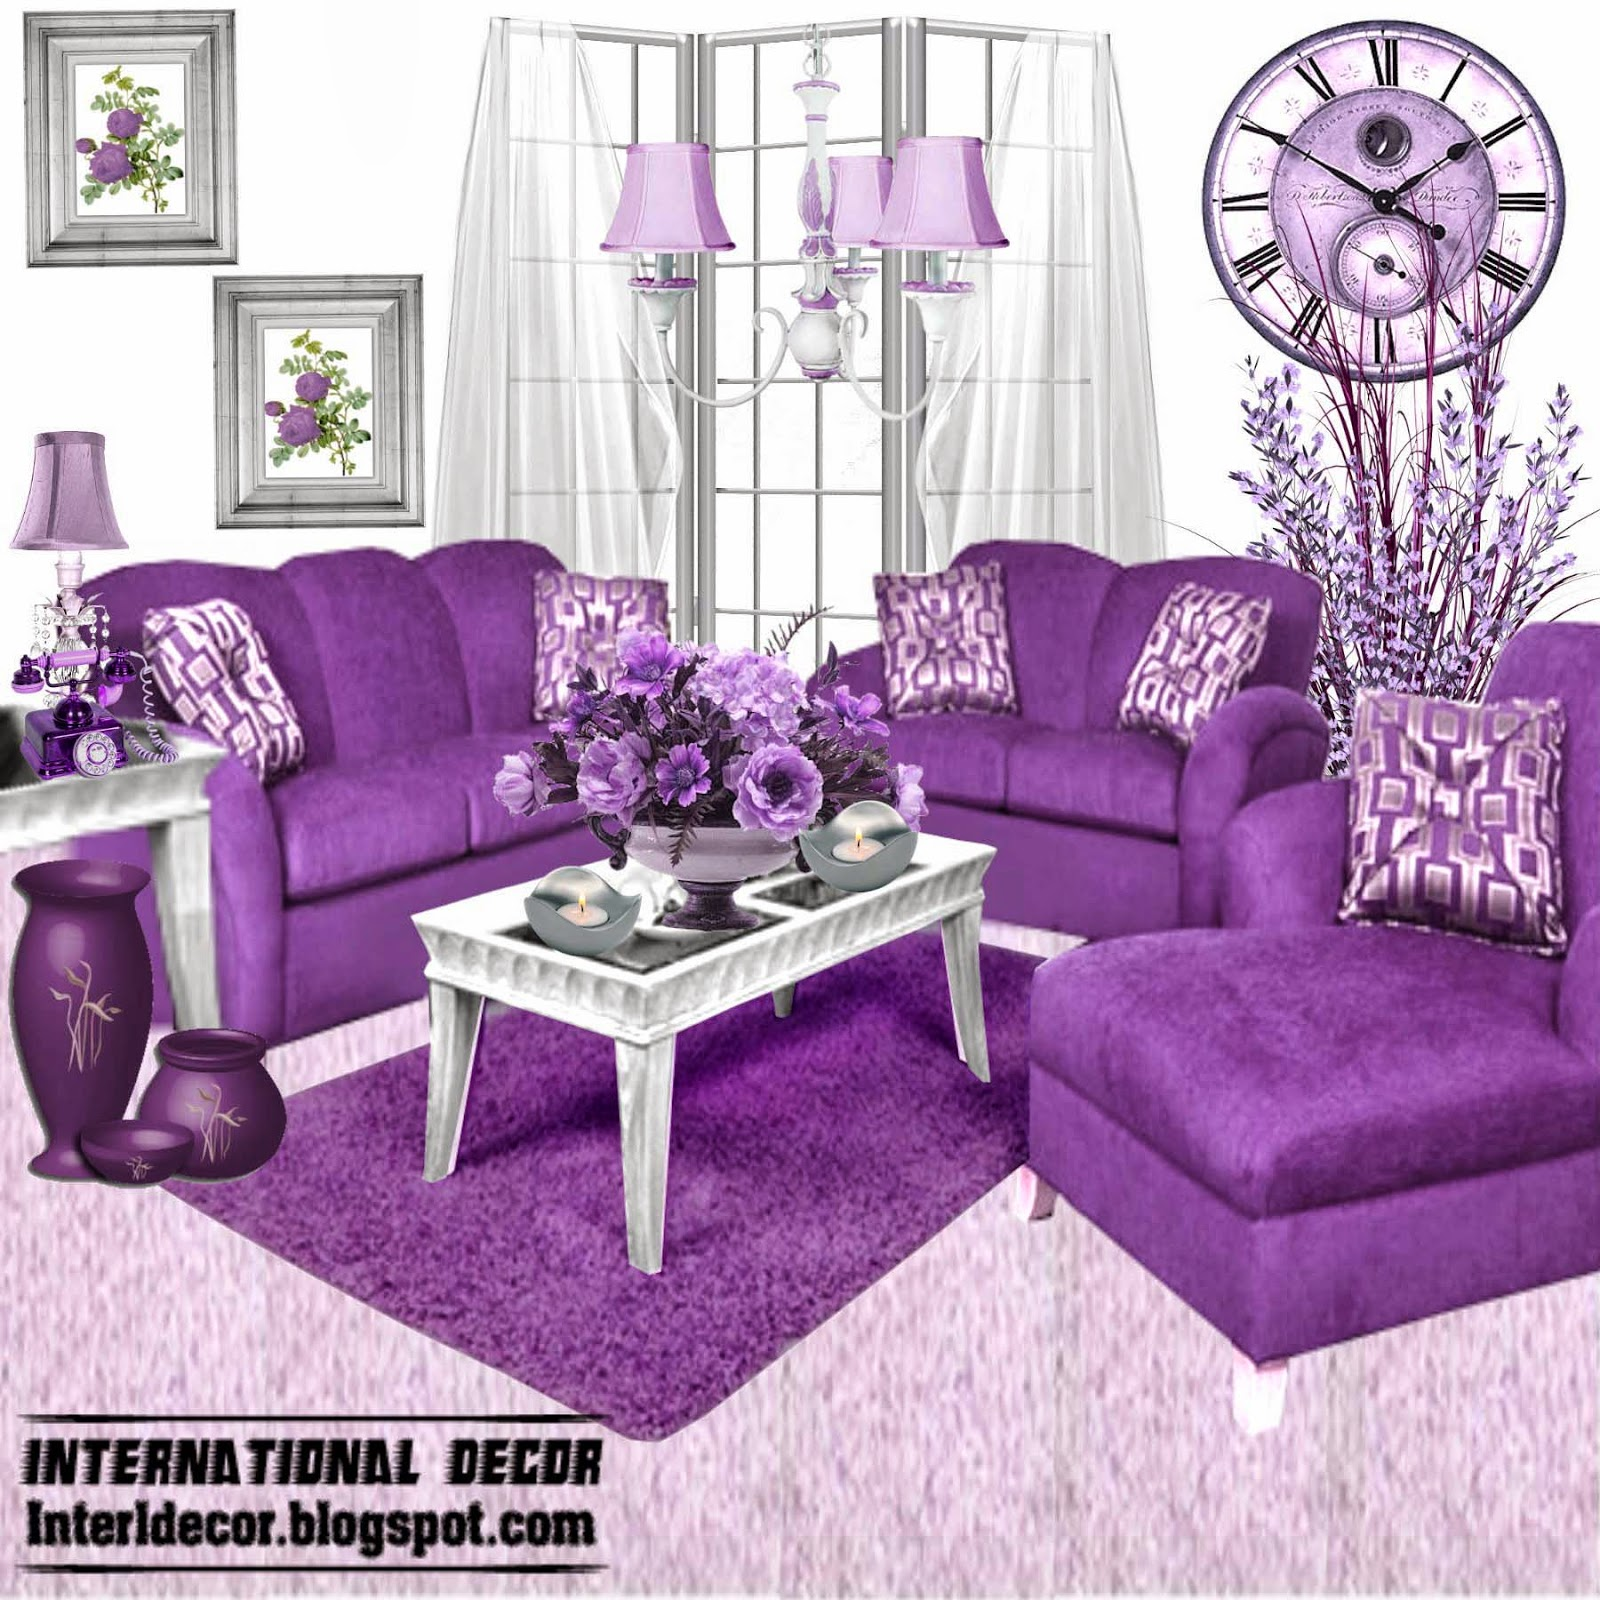 Luxury purple furniture sets sofas chairs for living for Living room decor sets